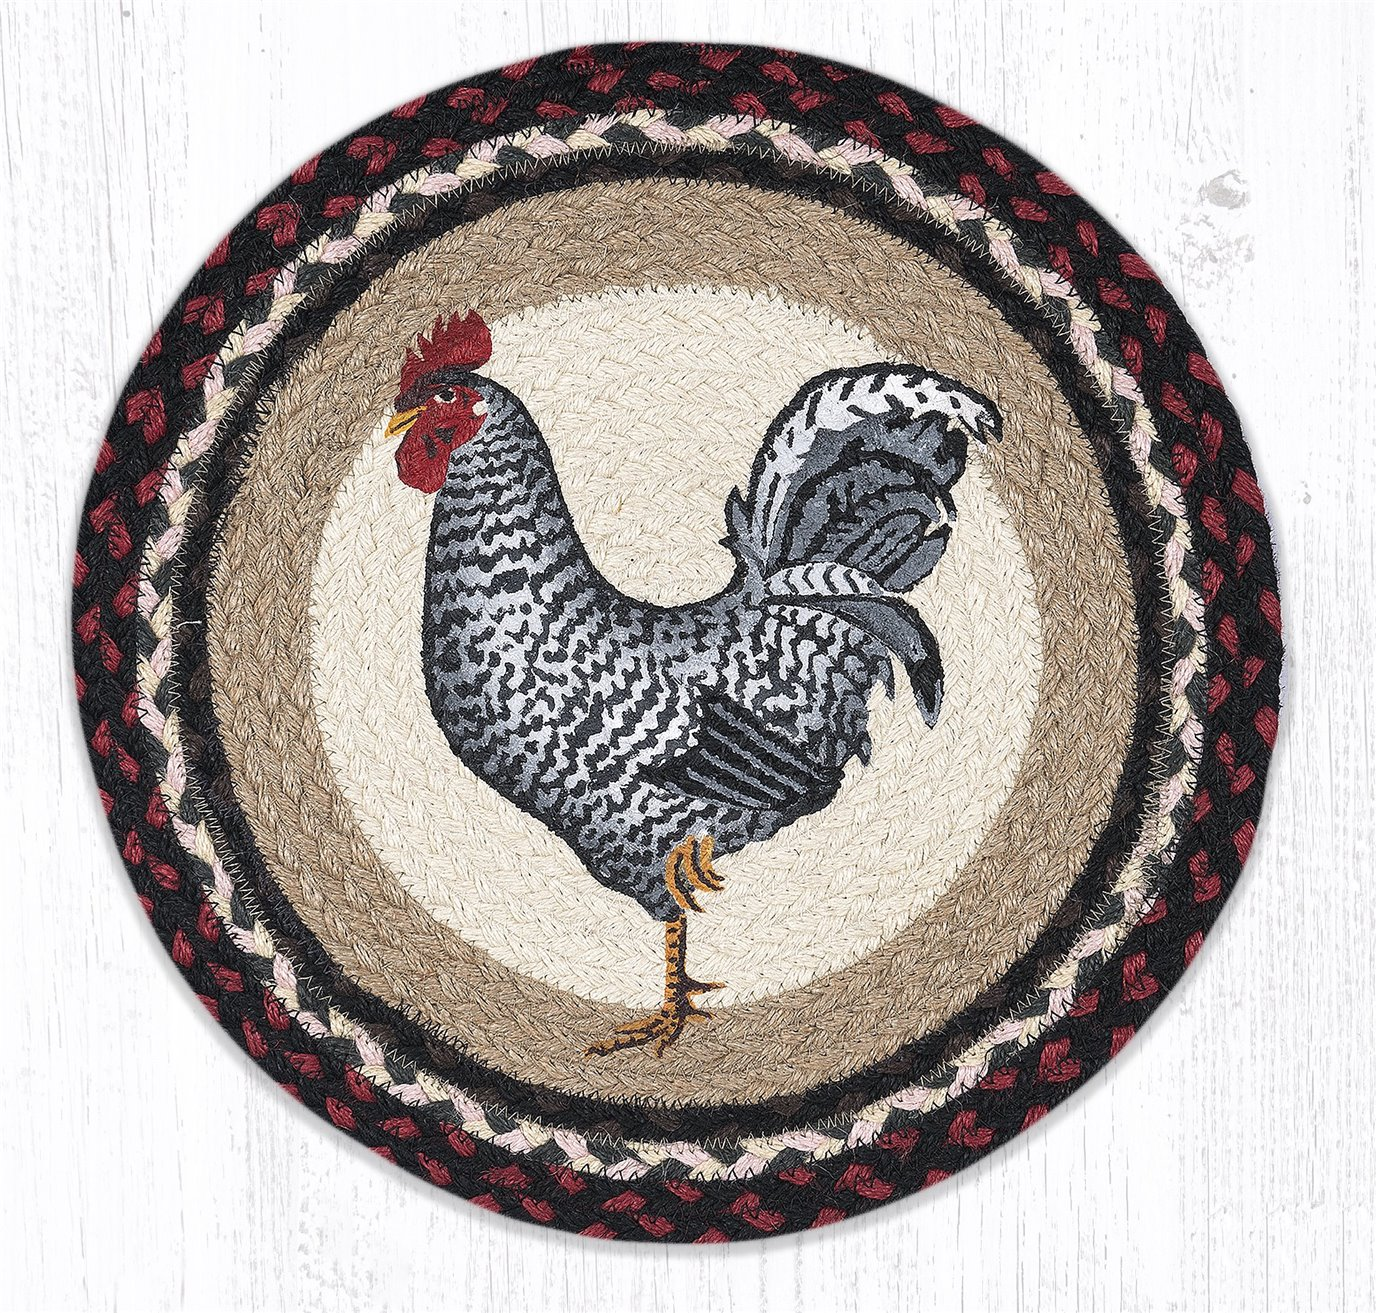 "Black & White Rooster Round Braided Chair Pad 15.5""x15.5"""